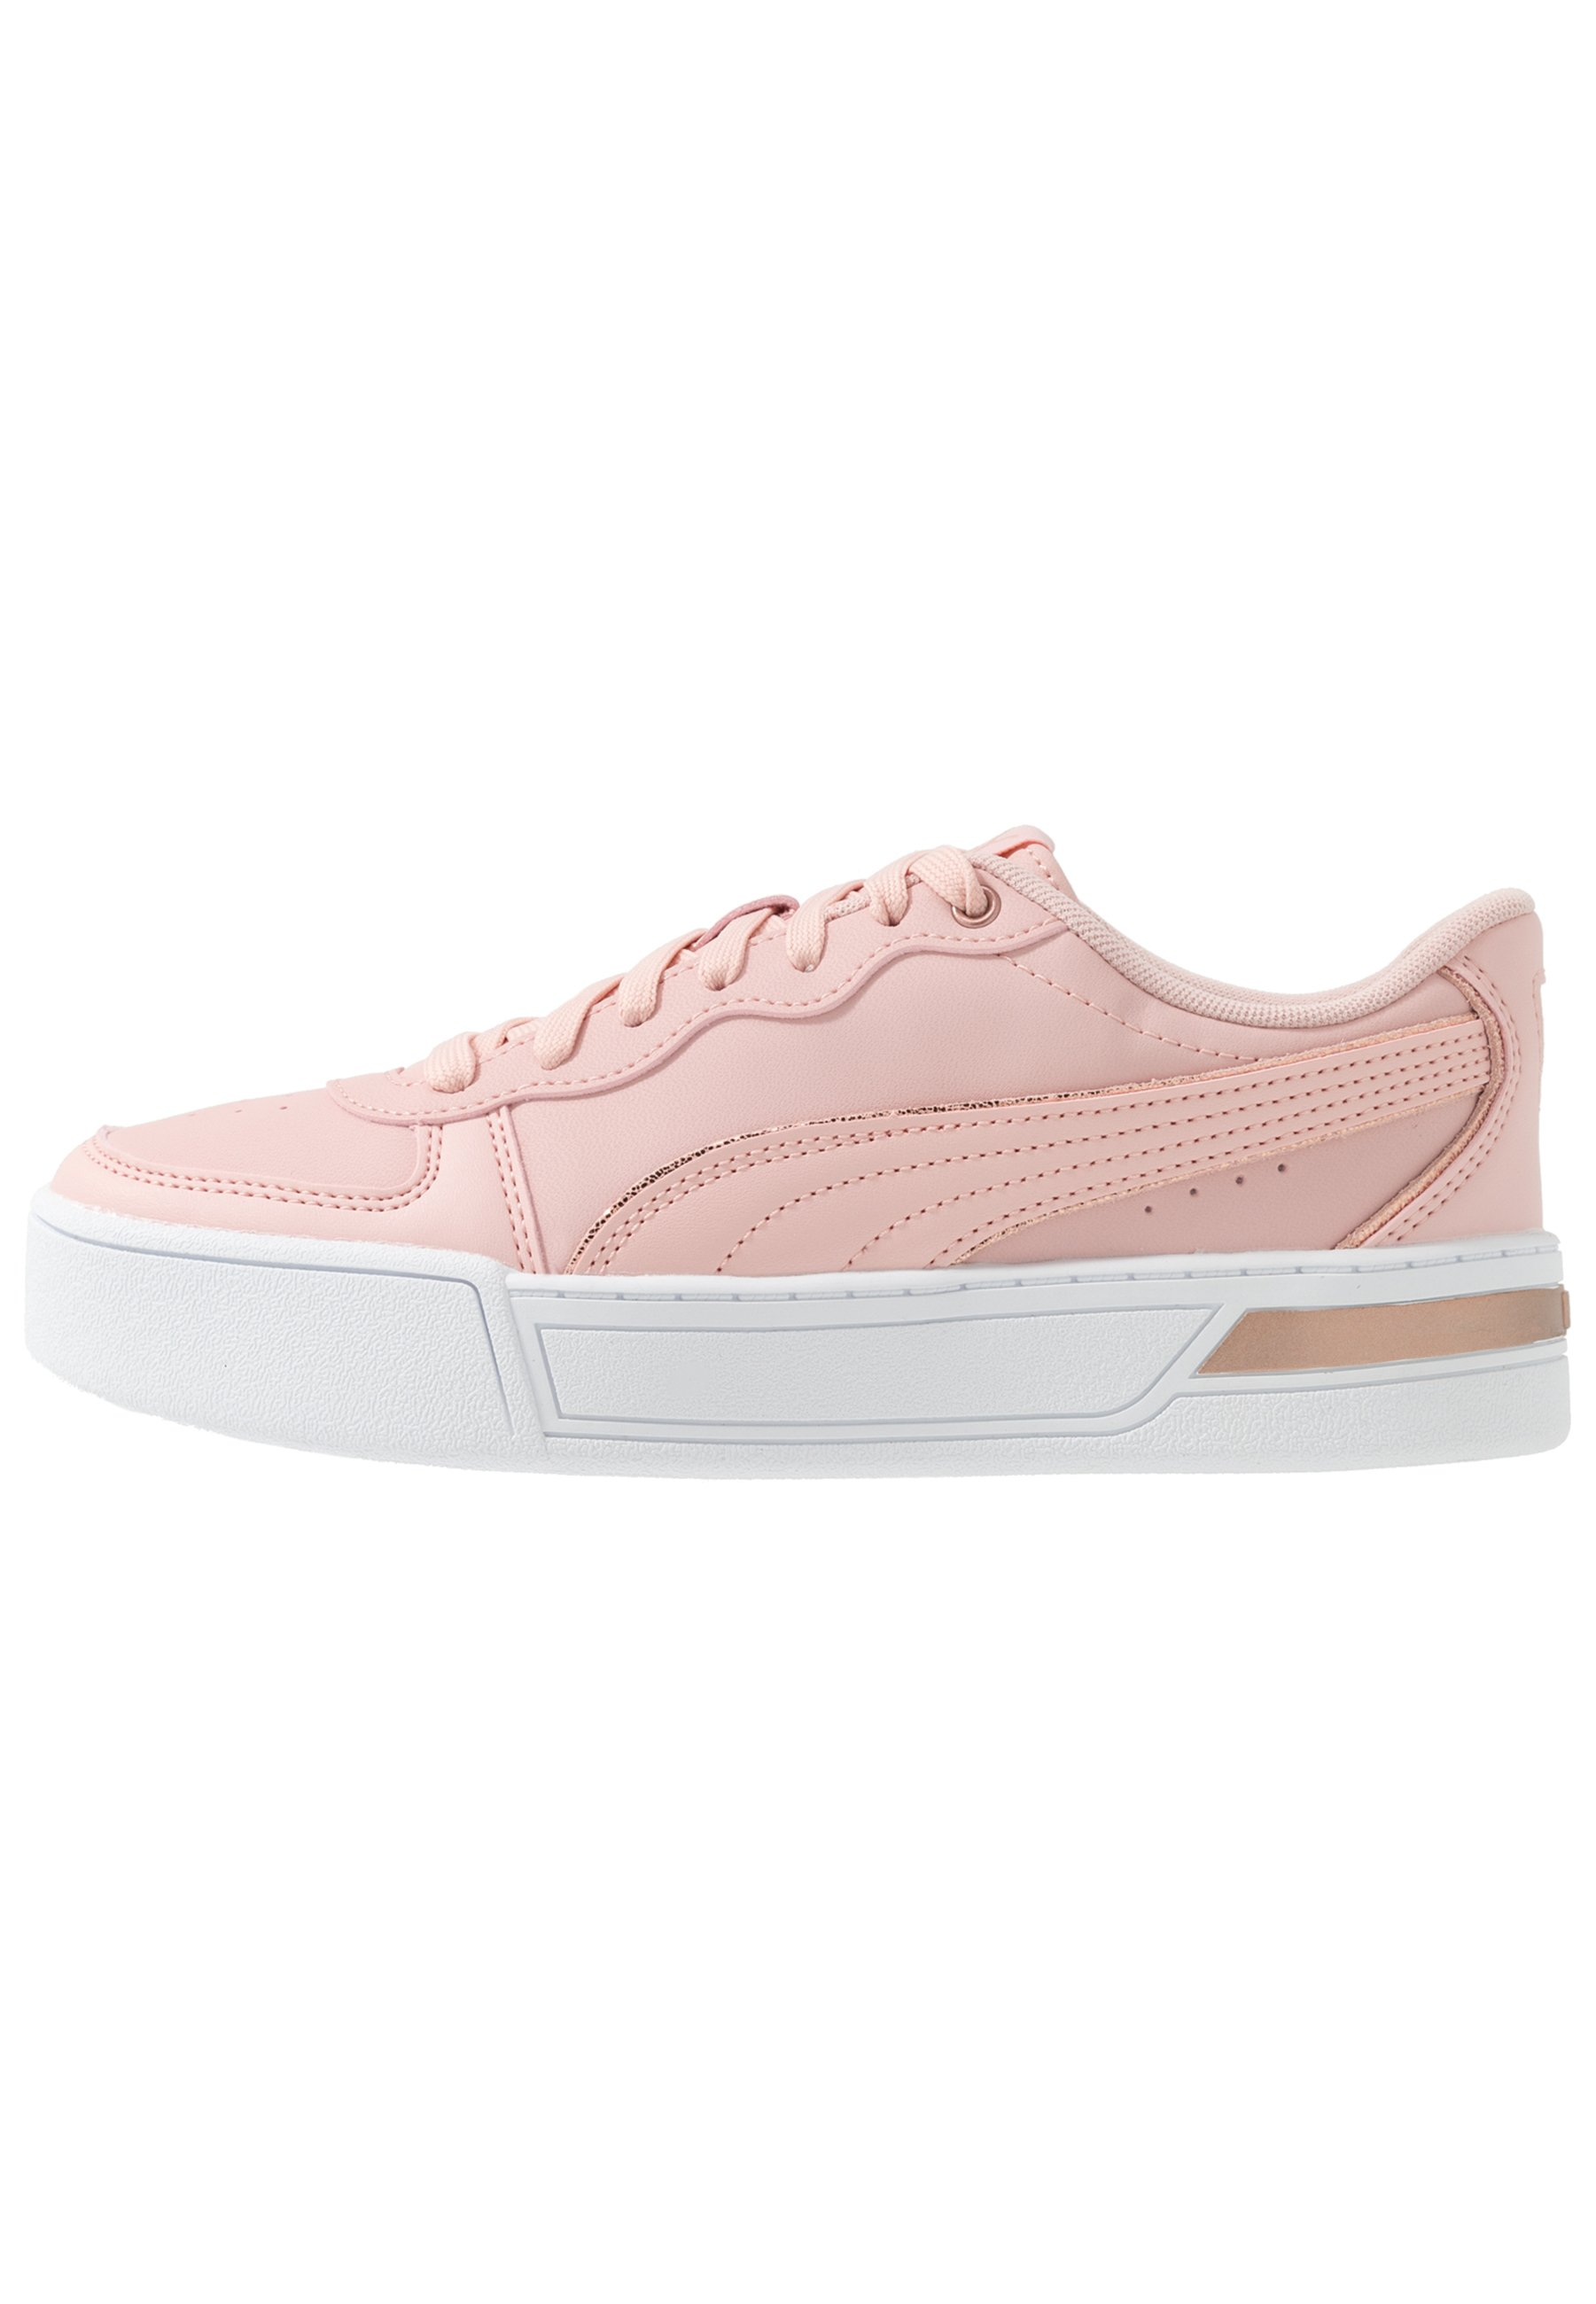 SKYEMETALLIC Sneaker low peachskinrose gold